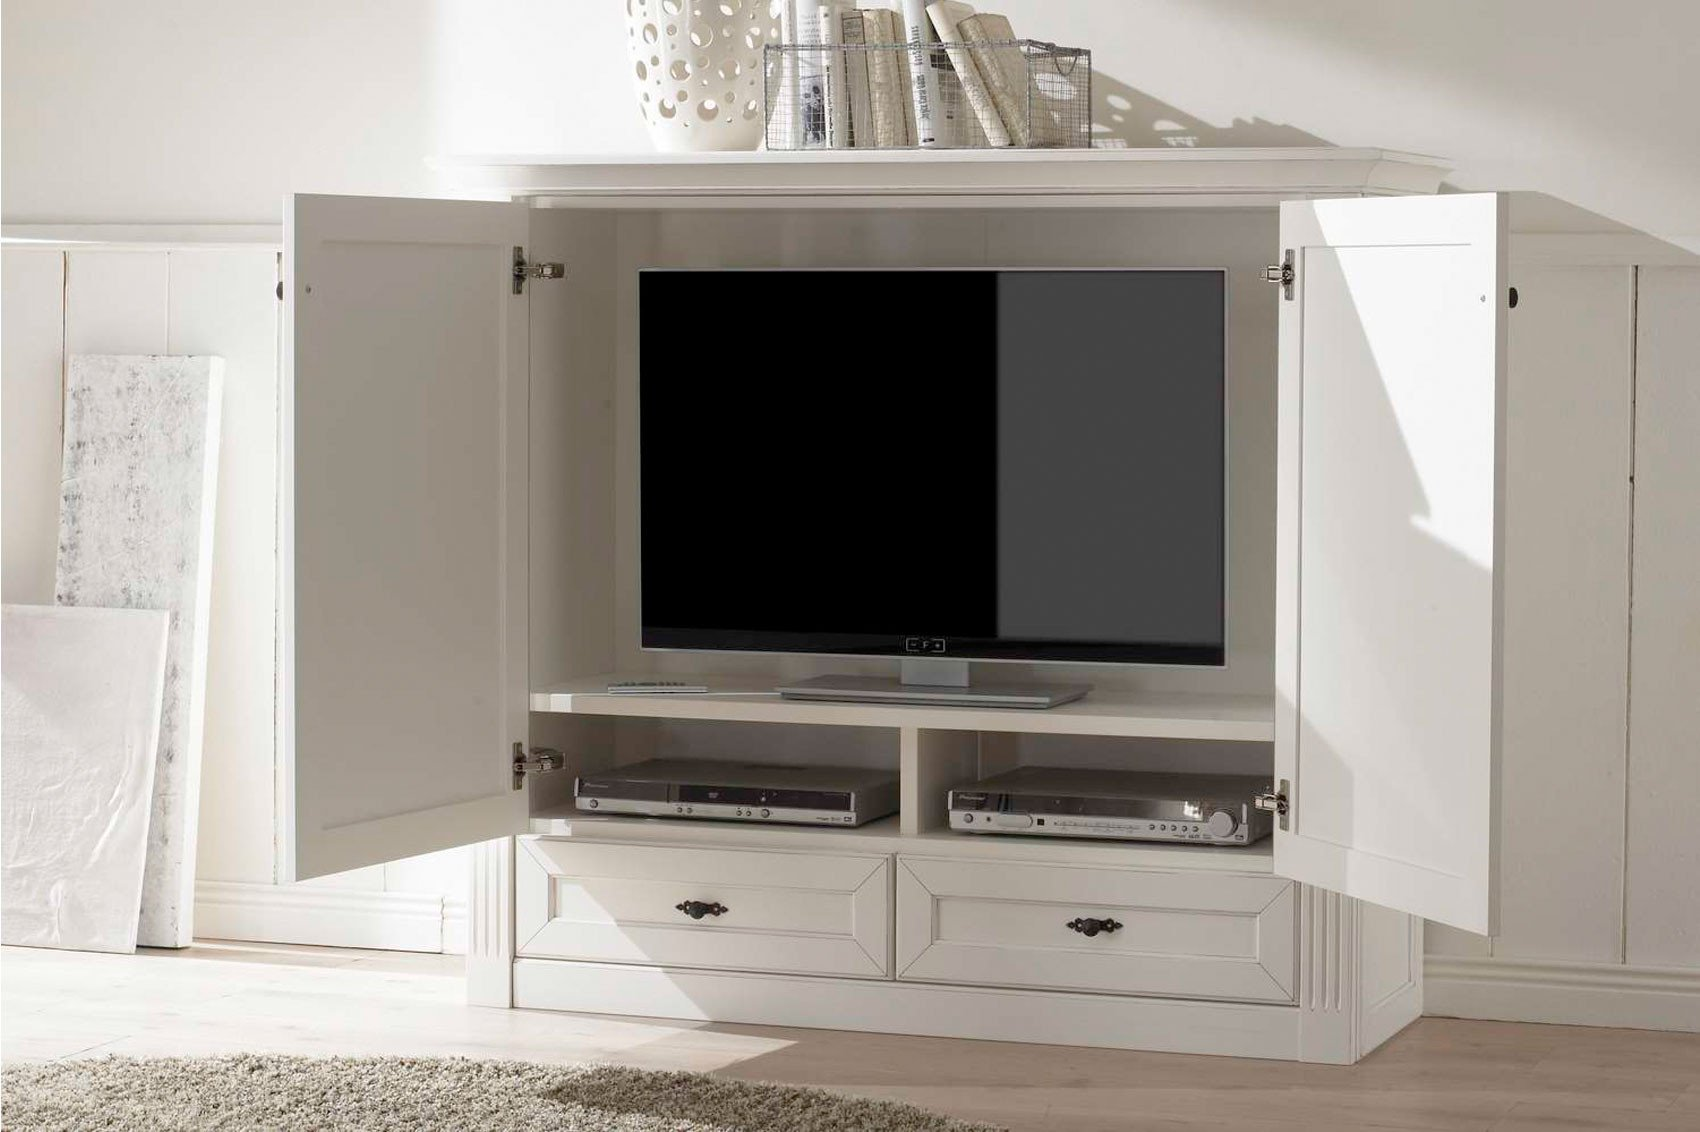 tv im schrank bestseller shop f r m bel und einrichtungen. Black Bedroom Furniture Sets. Home Design Ideas